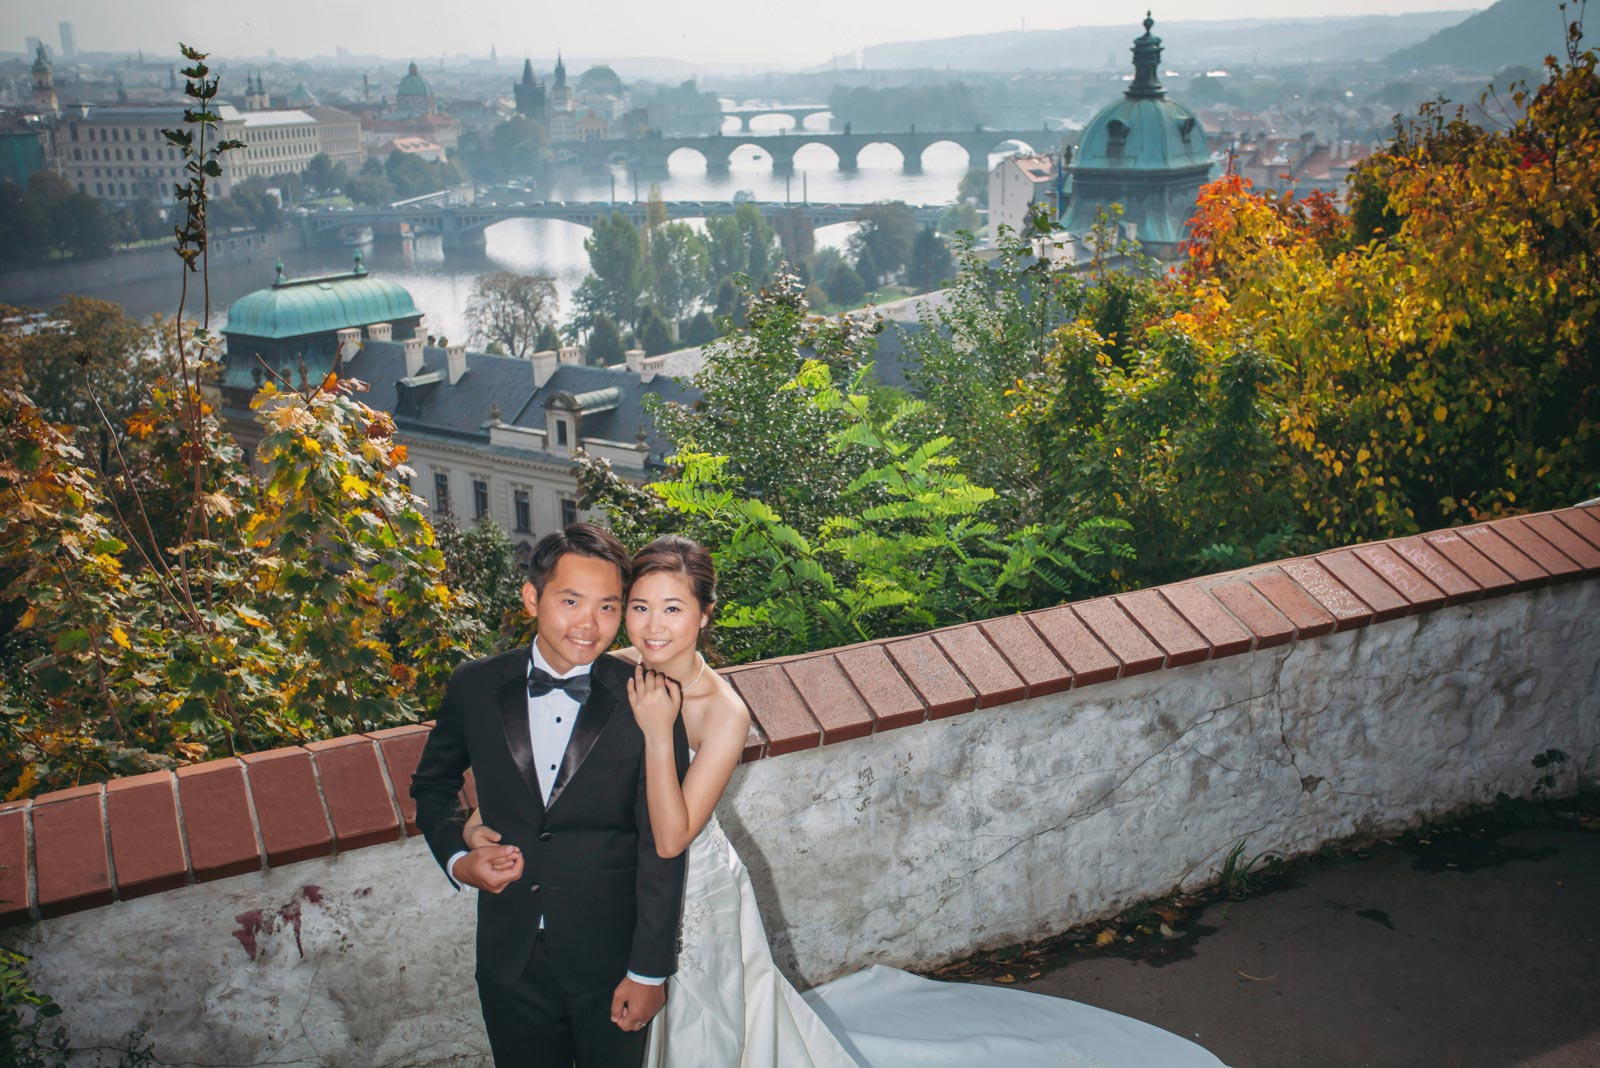 Enzo & Ray's Prague pre wedding portrait session and wedding proposal by American Luxury Fine Art Wedding Photographer Kurt Vinion.